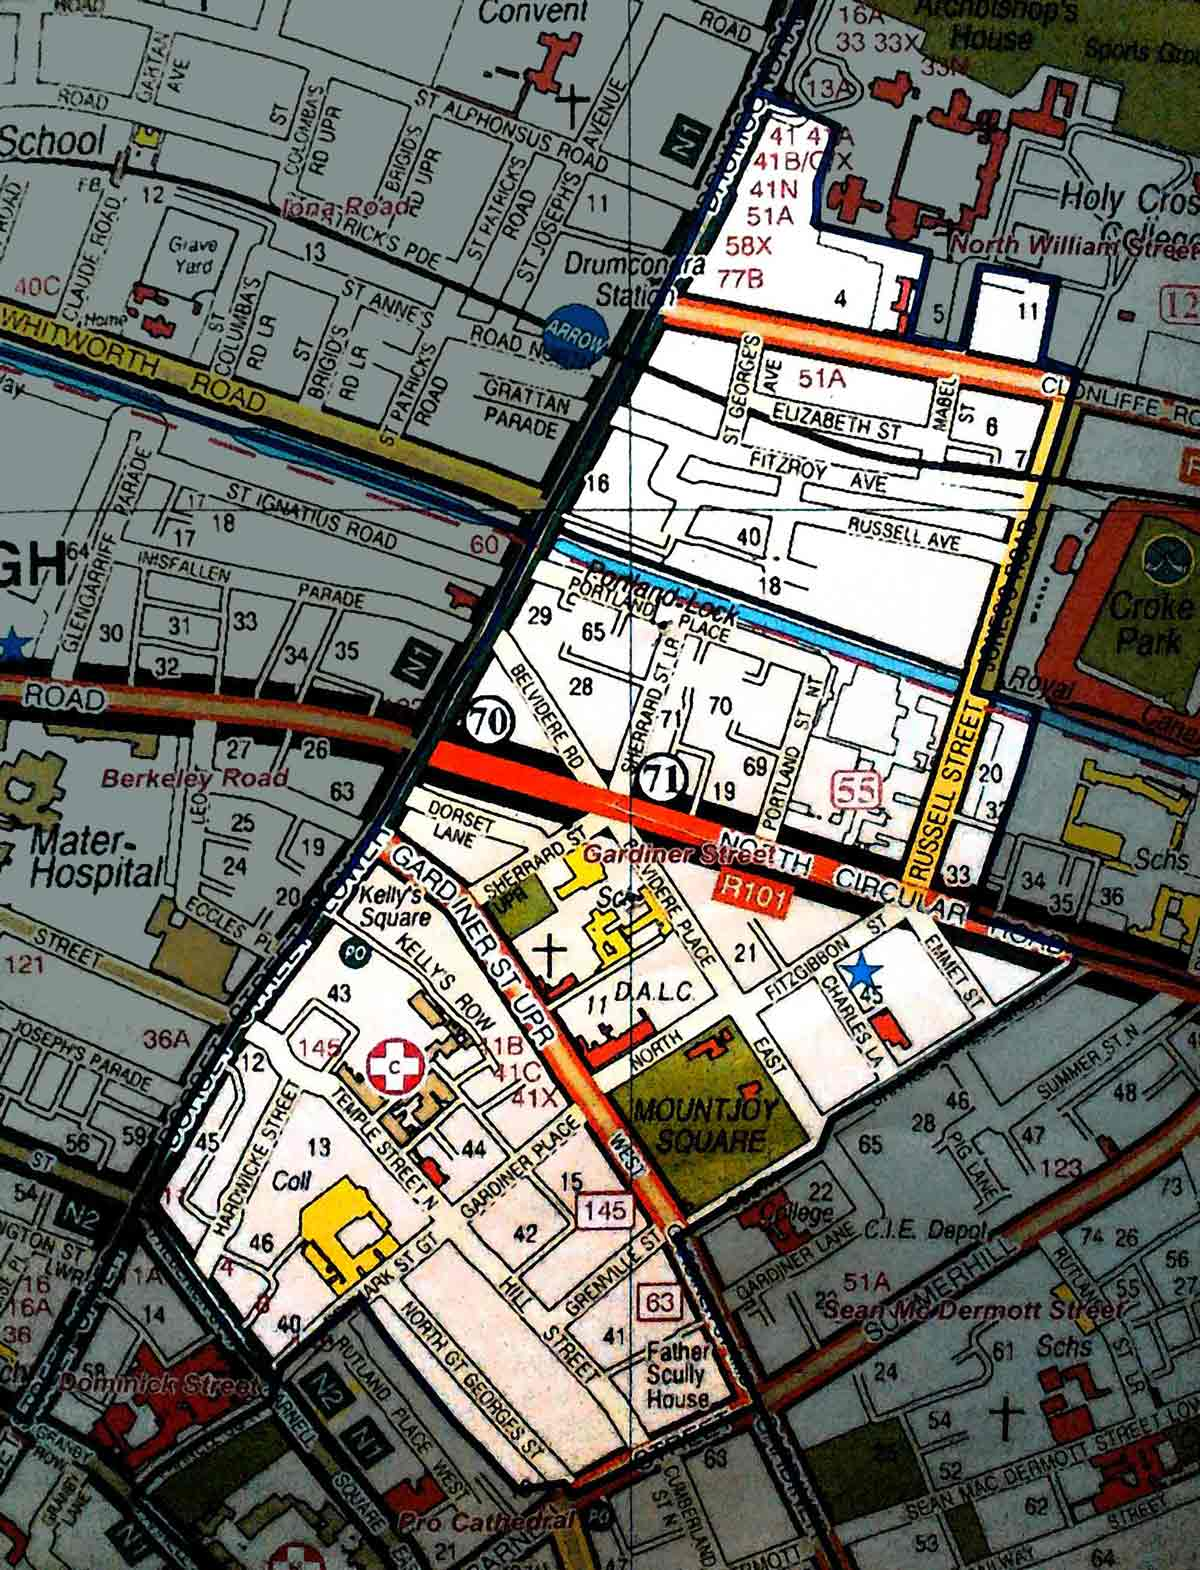 Map of Gardiner Street Parish